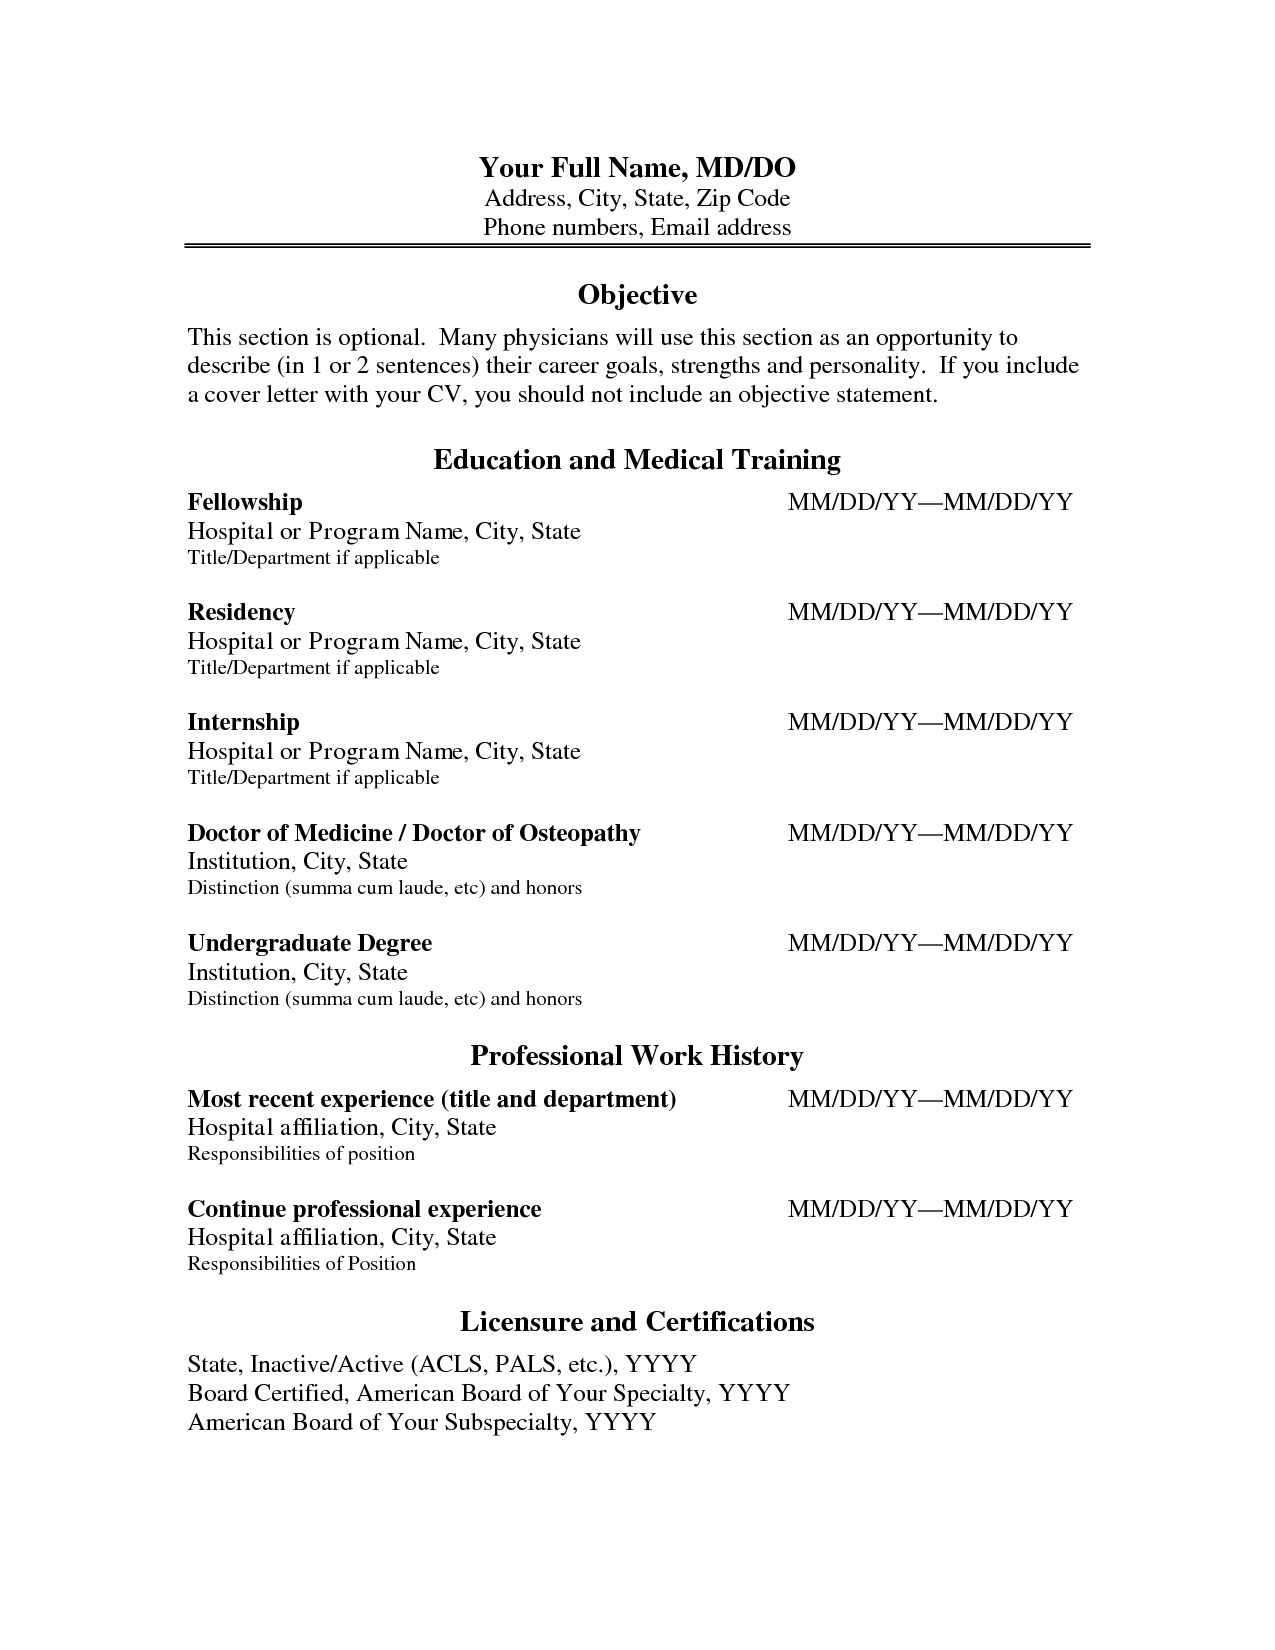 Physician Curriculum Vitae Template